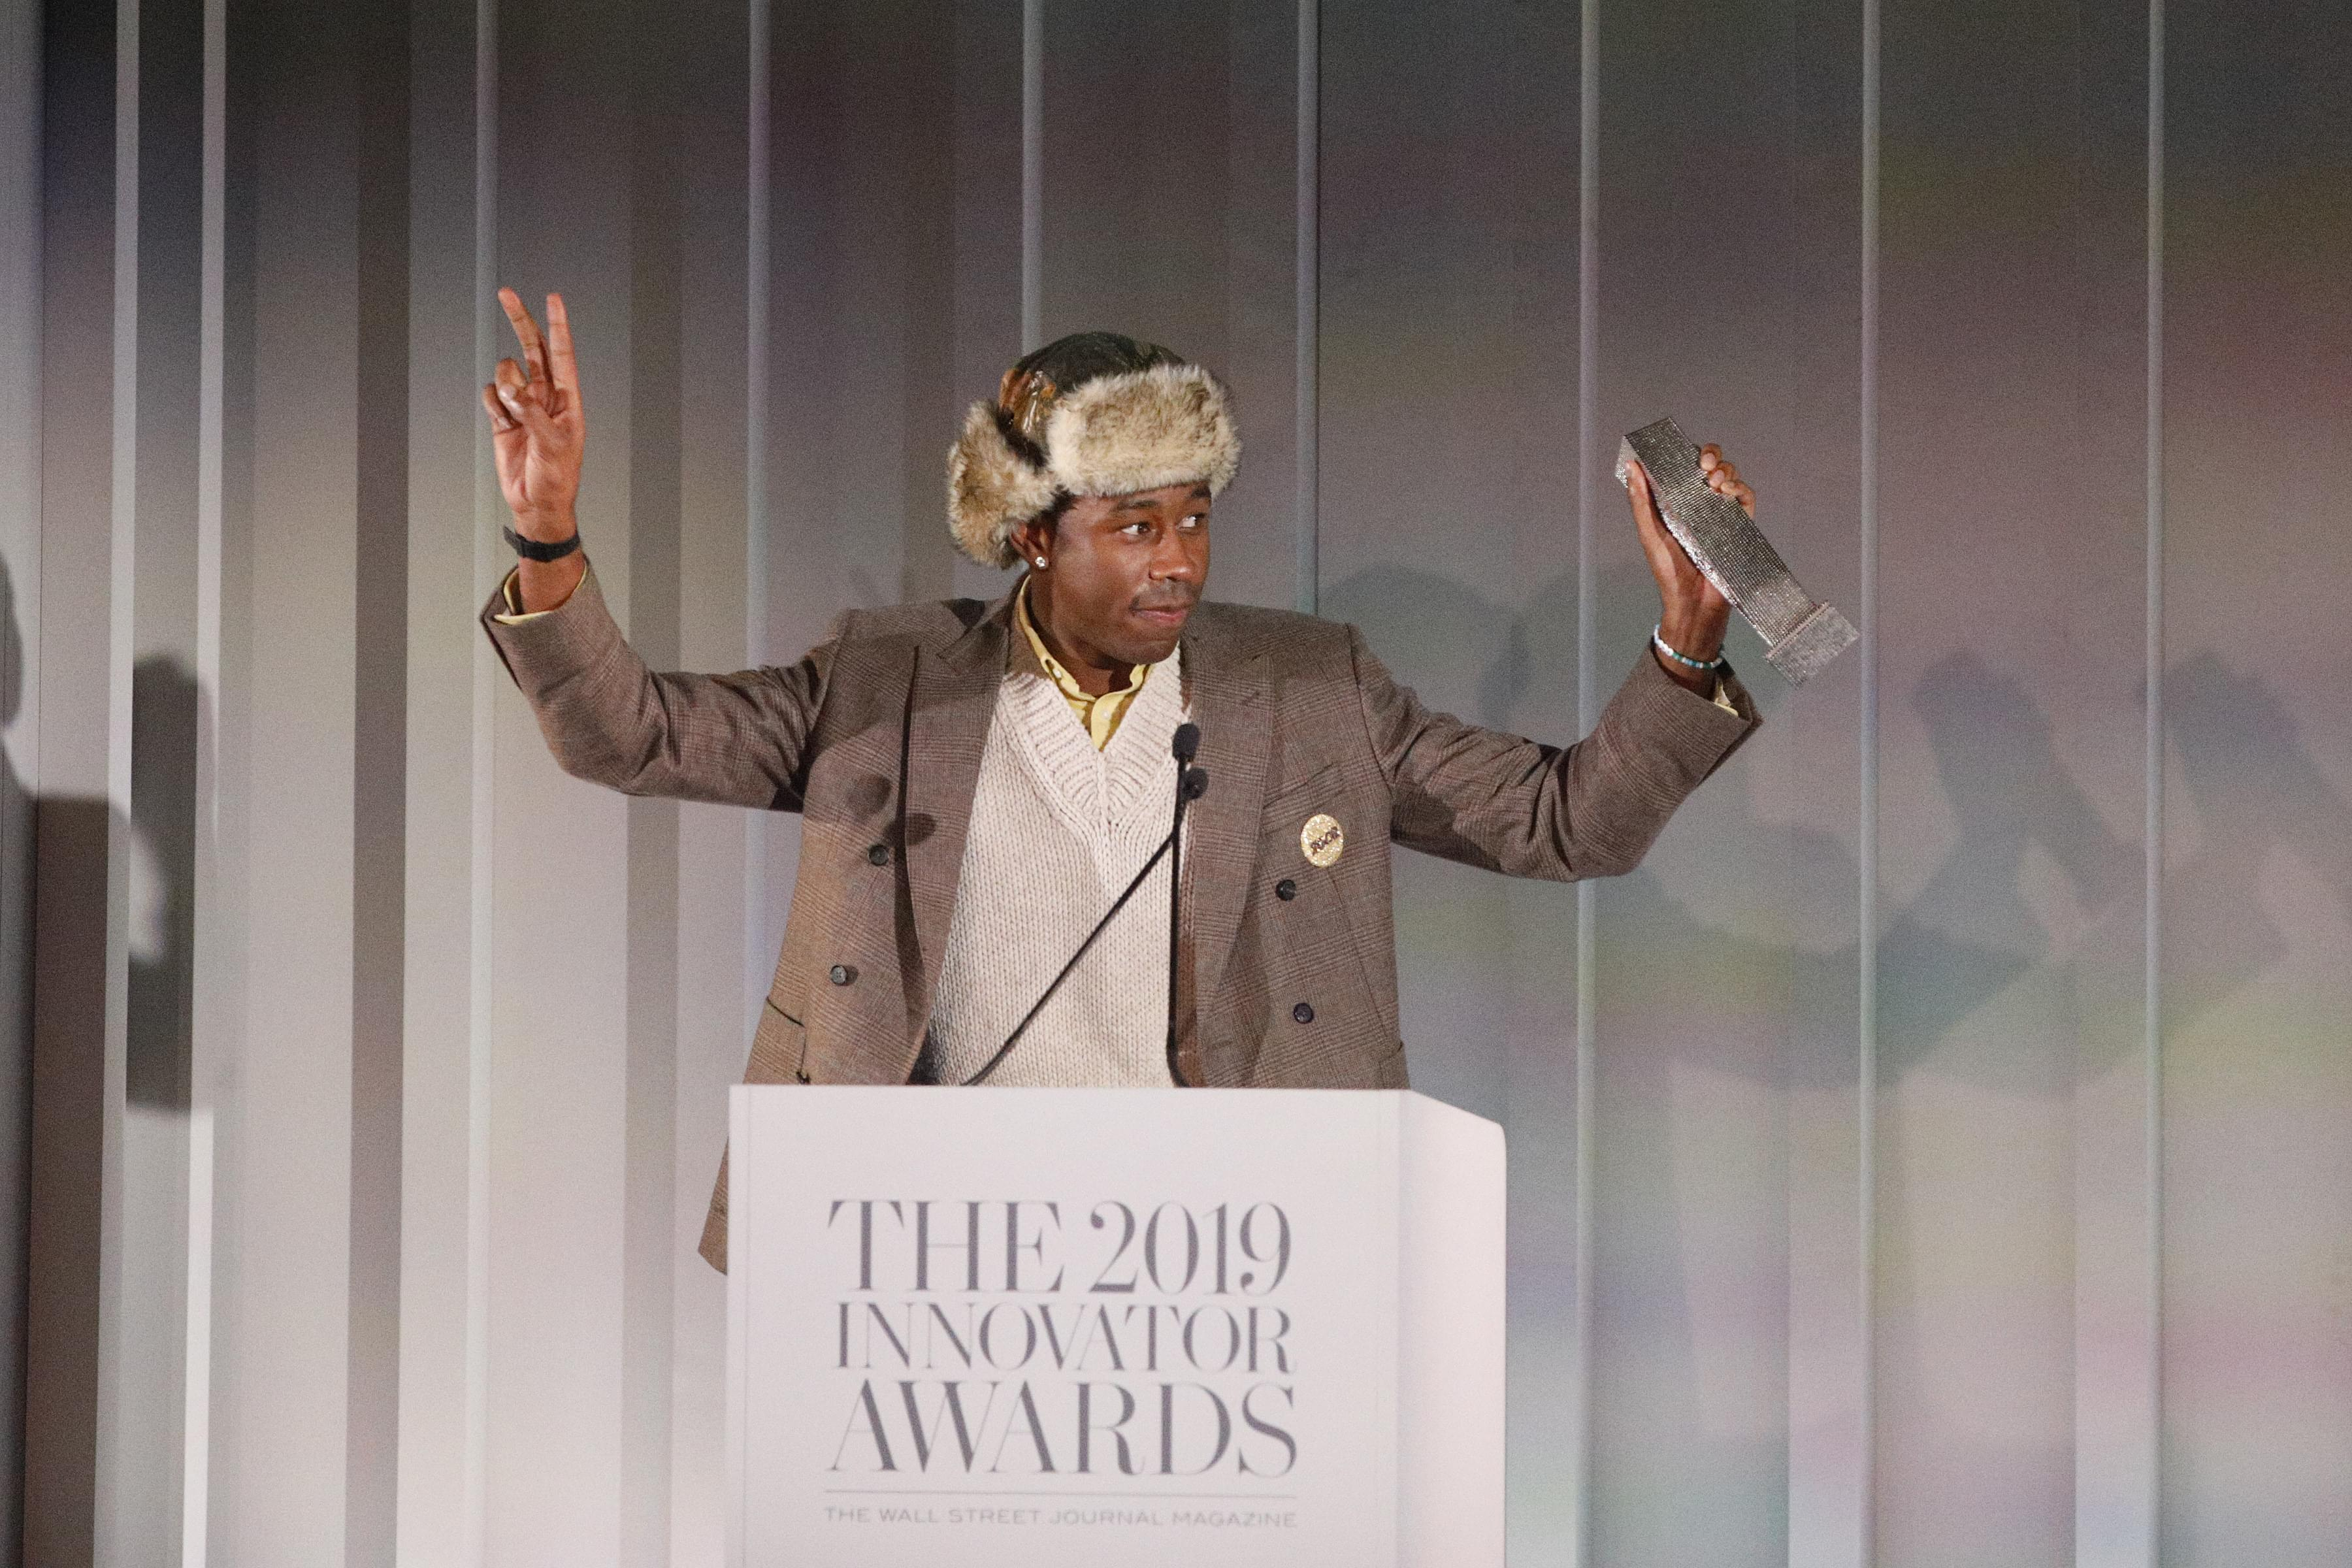 Tyler The Creator Receives Music Innovator Of The Year Award! [WATCH]